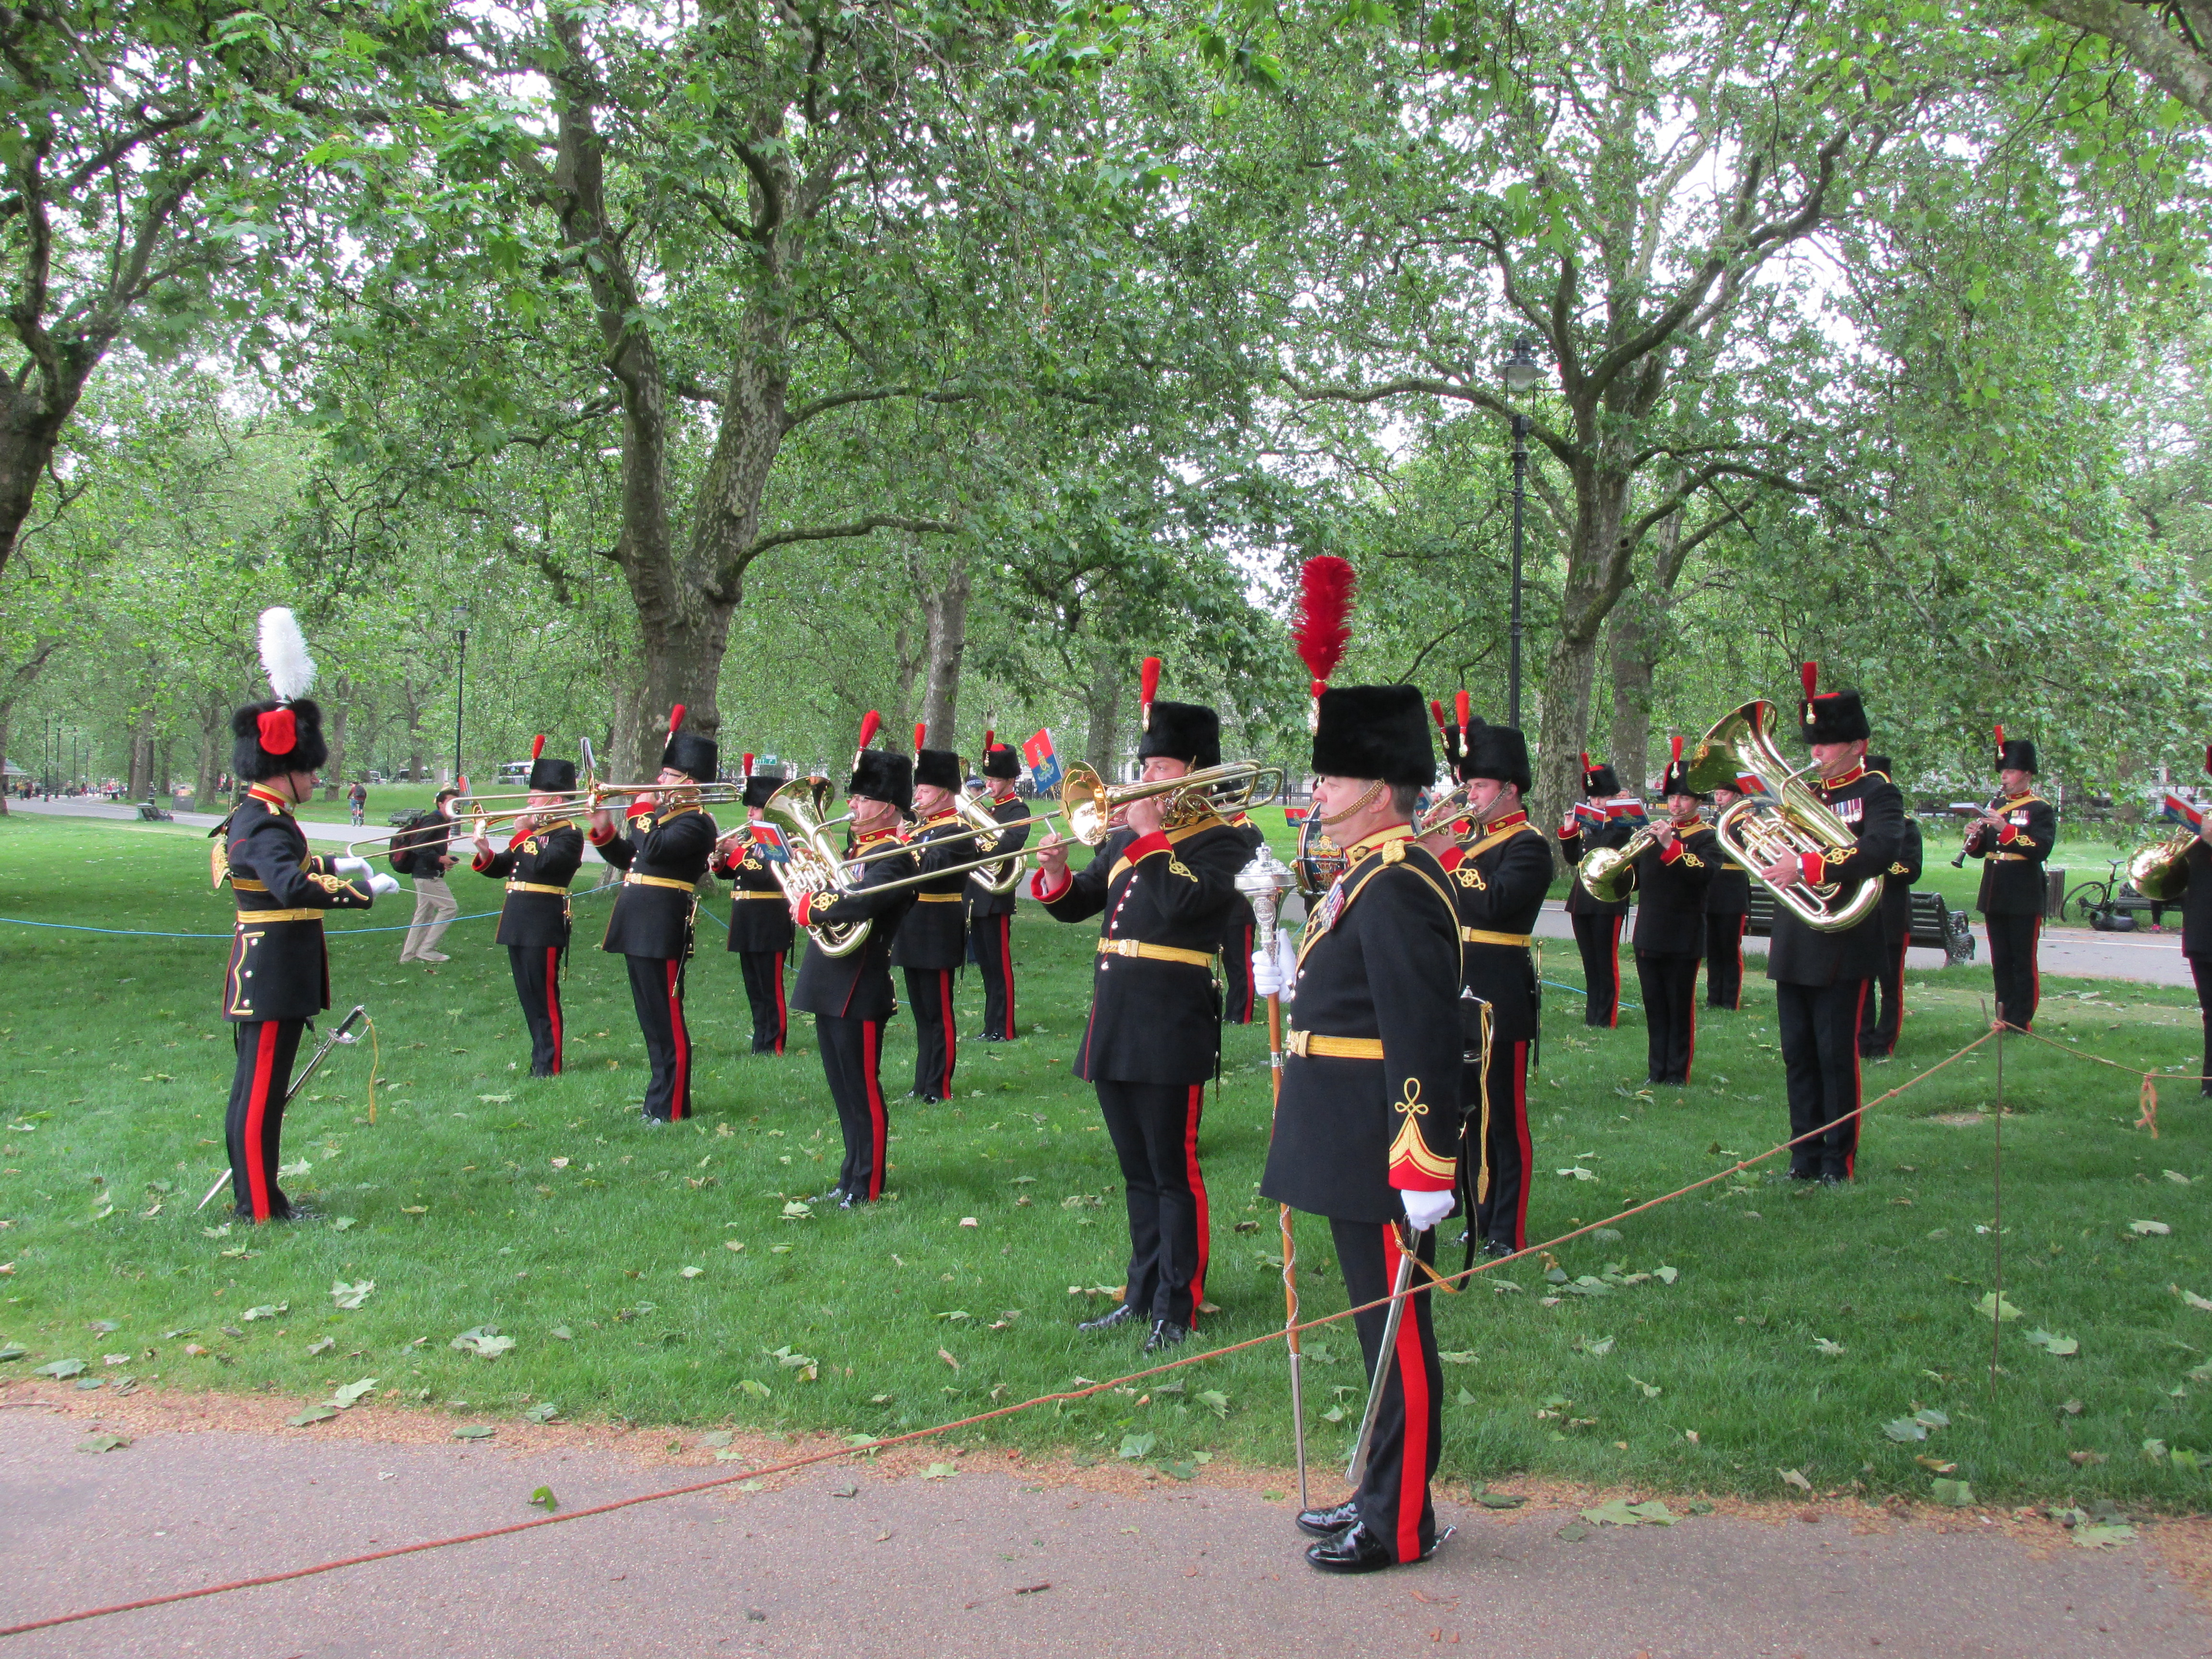 The Royal Artillery Band